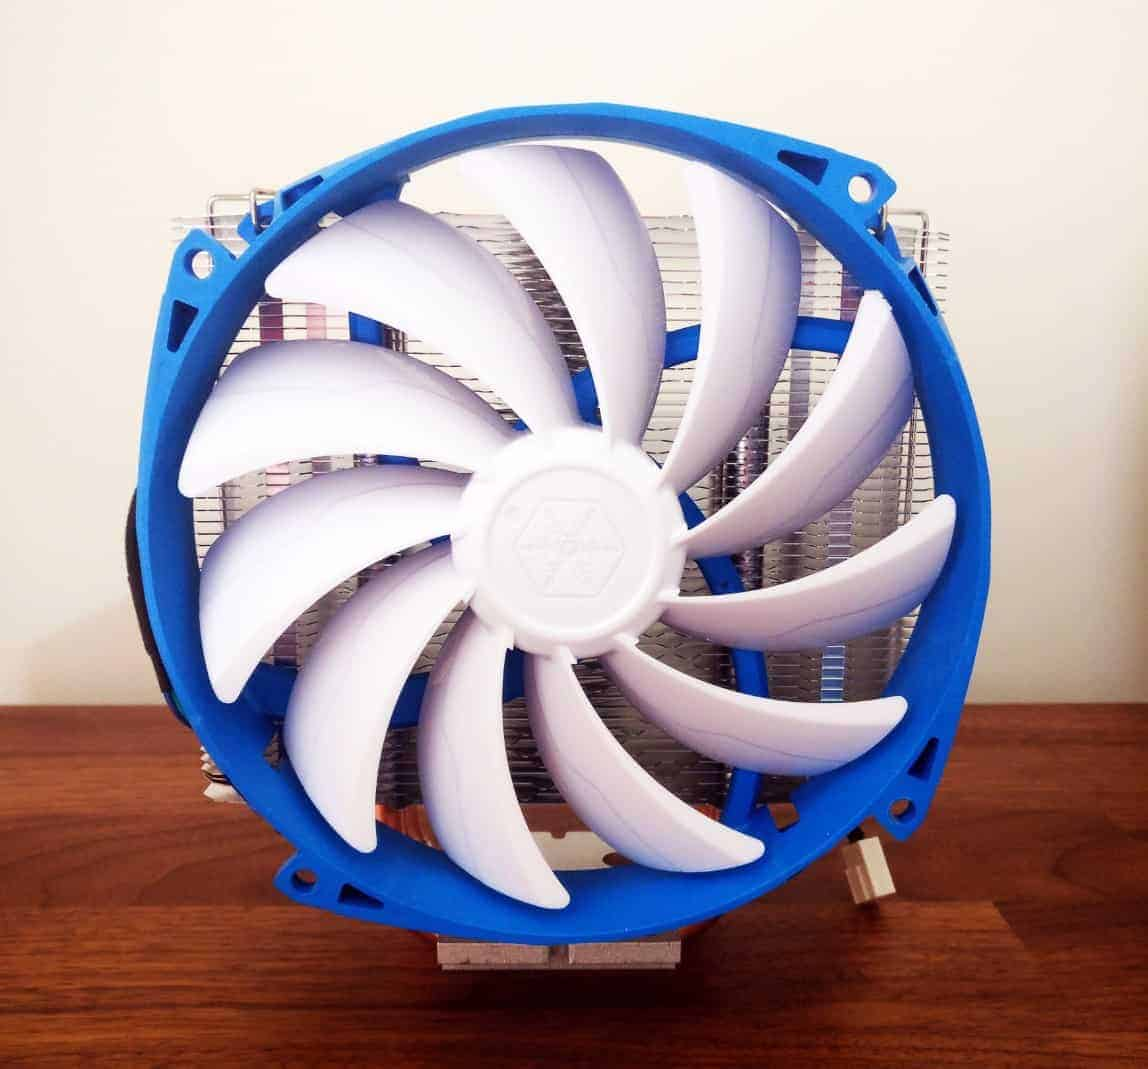 Silverstone-AR07-Photos32 Silverstone Argon AR07 CPU Cooler Review